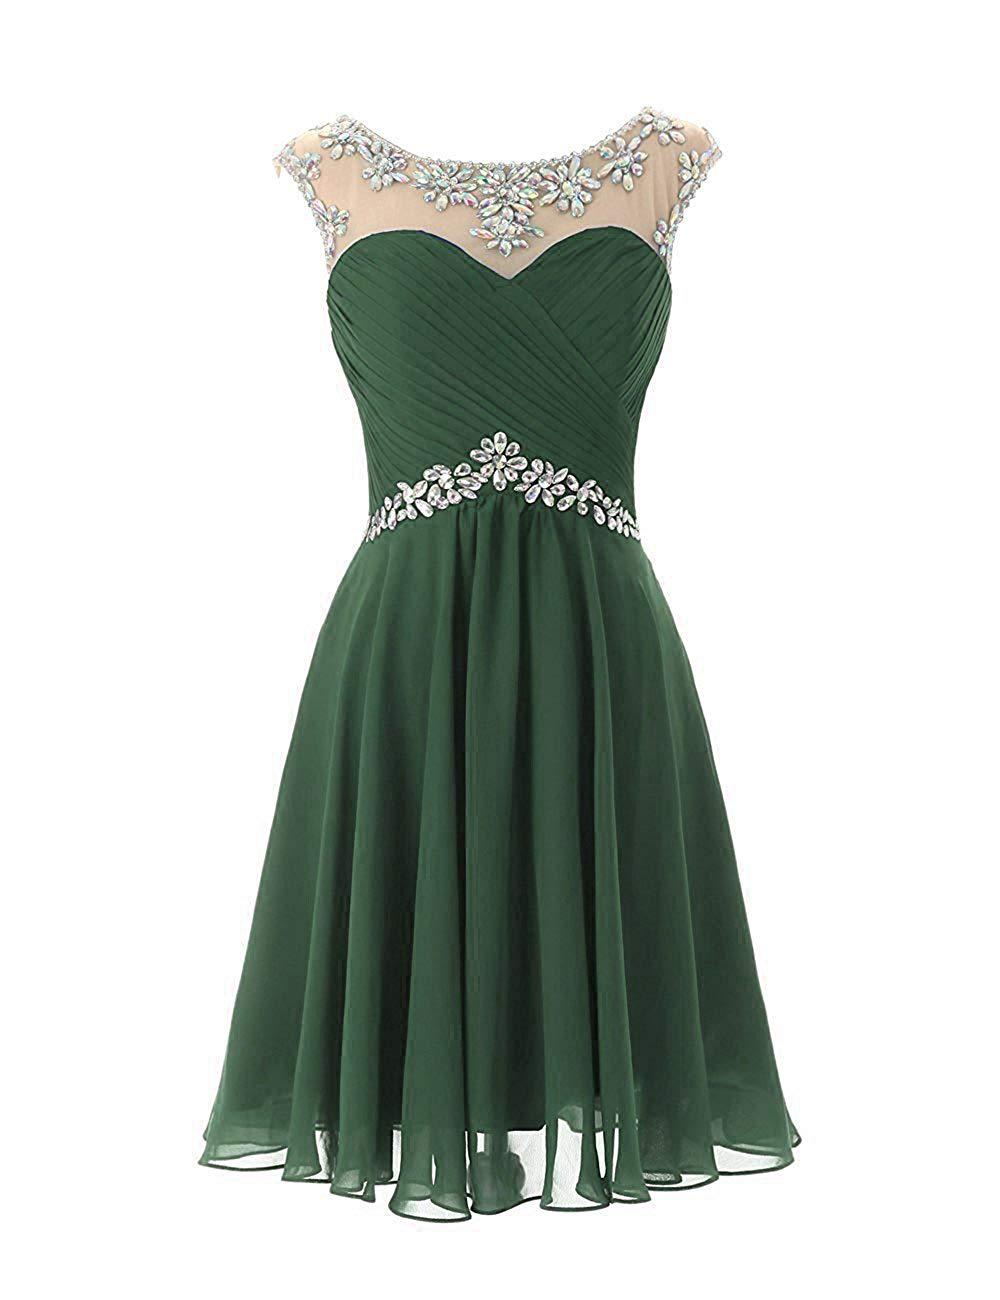 Fashion New Style 2019 Jewel Collar Cap Sleeves Delicate Beaded Green Tulle A Line Short   Cocktail     Dresses   Vestido de   cocktail